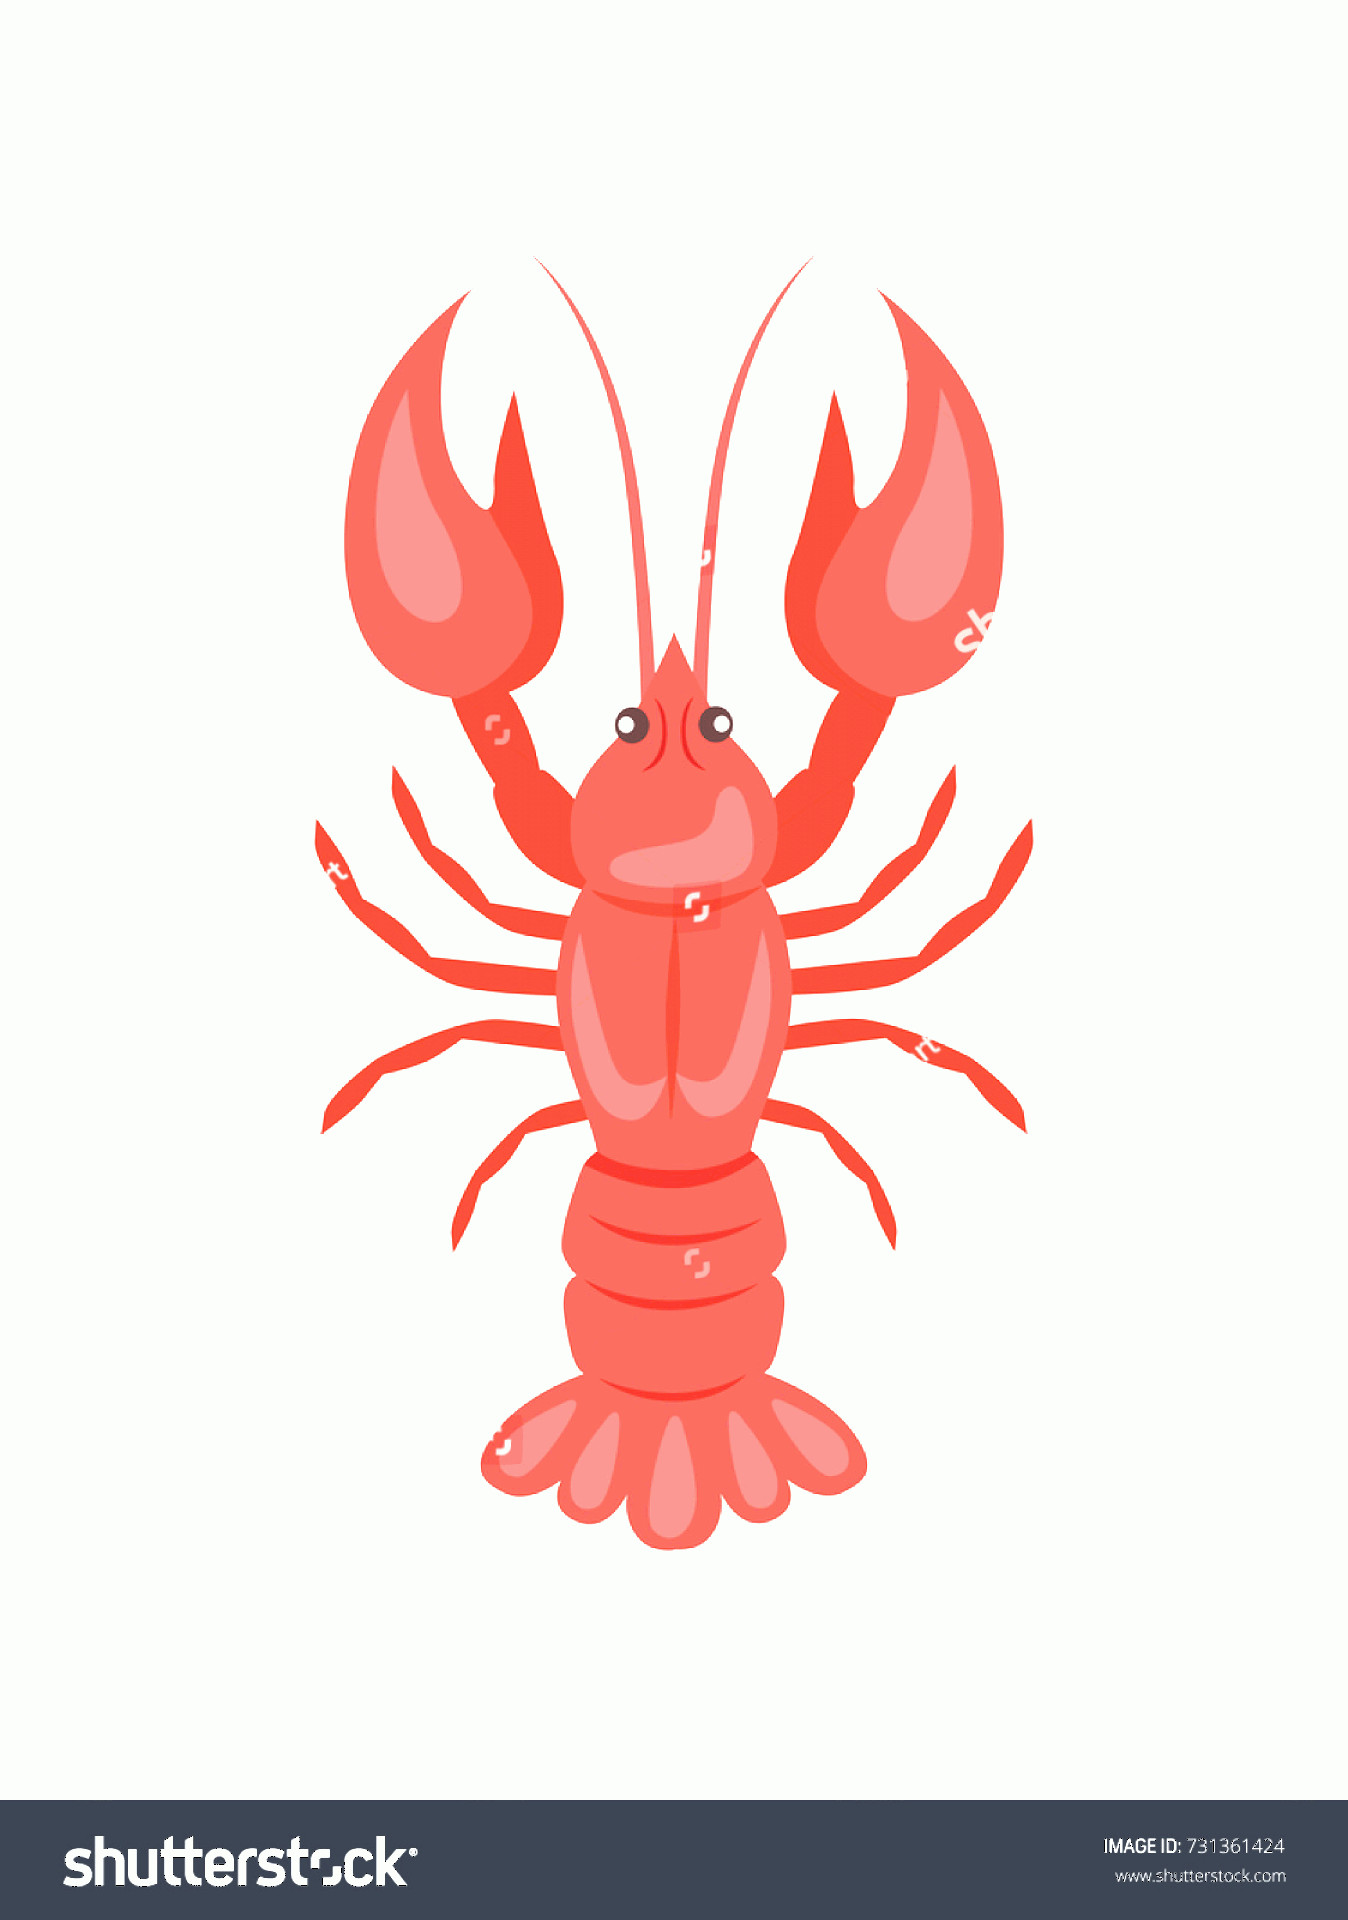 Crawfish Vector: Red Crayfish Vector Illustration Isolated On